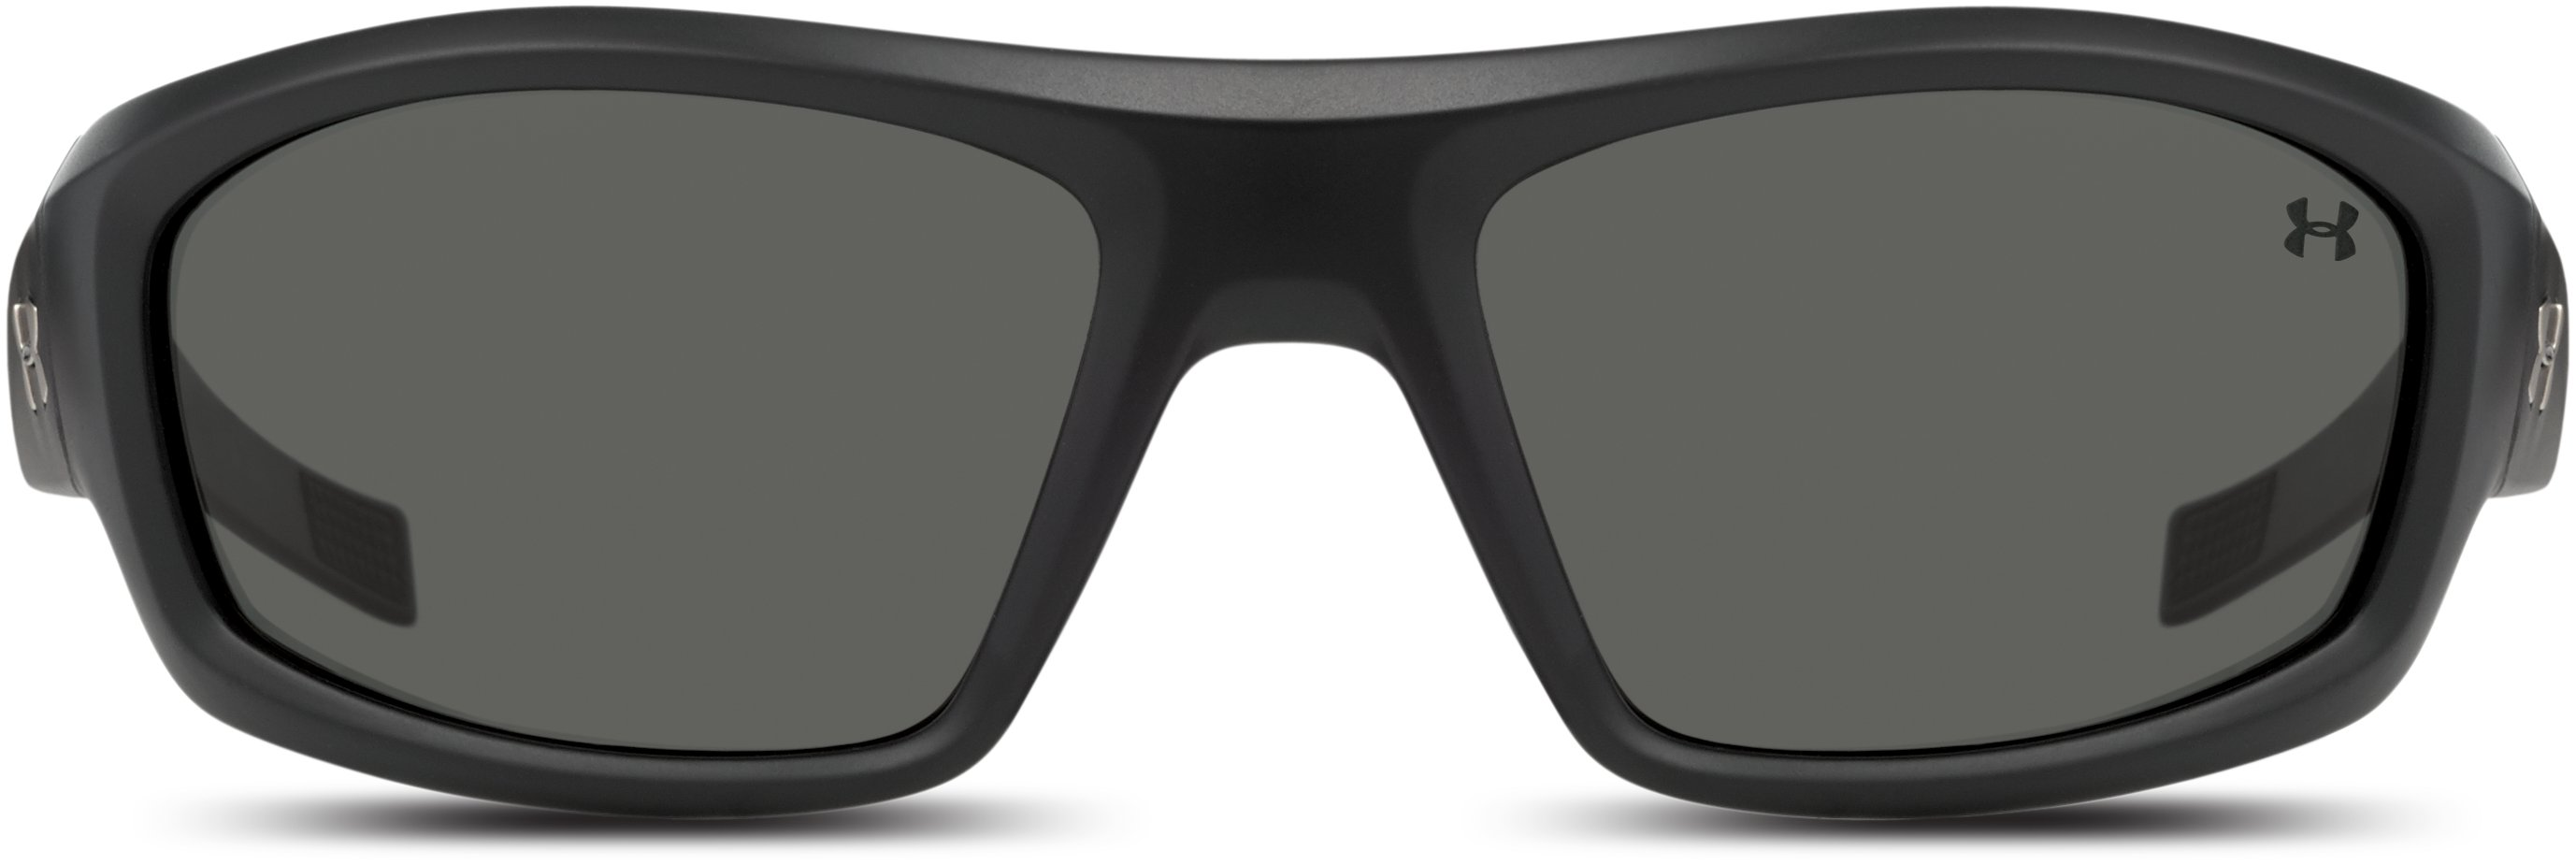 UA Power Sunglasses, Satin Black,